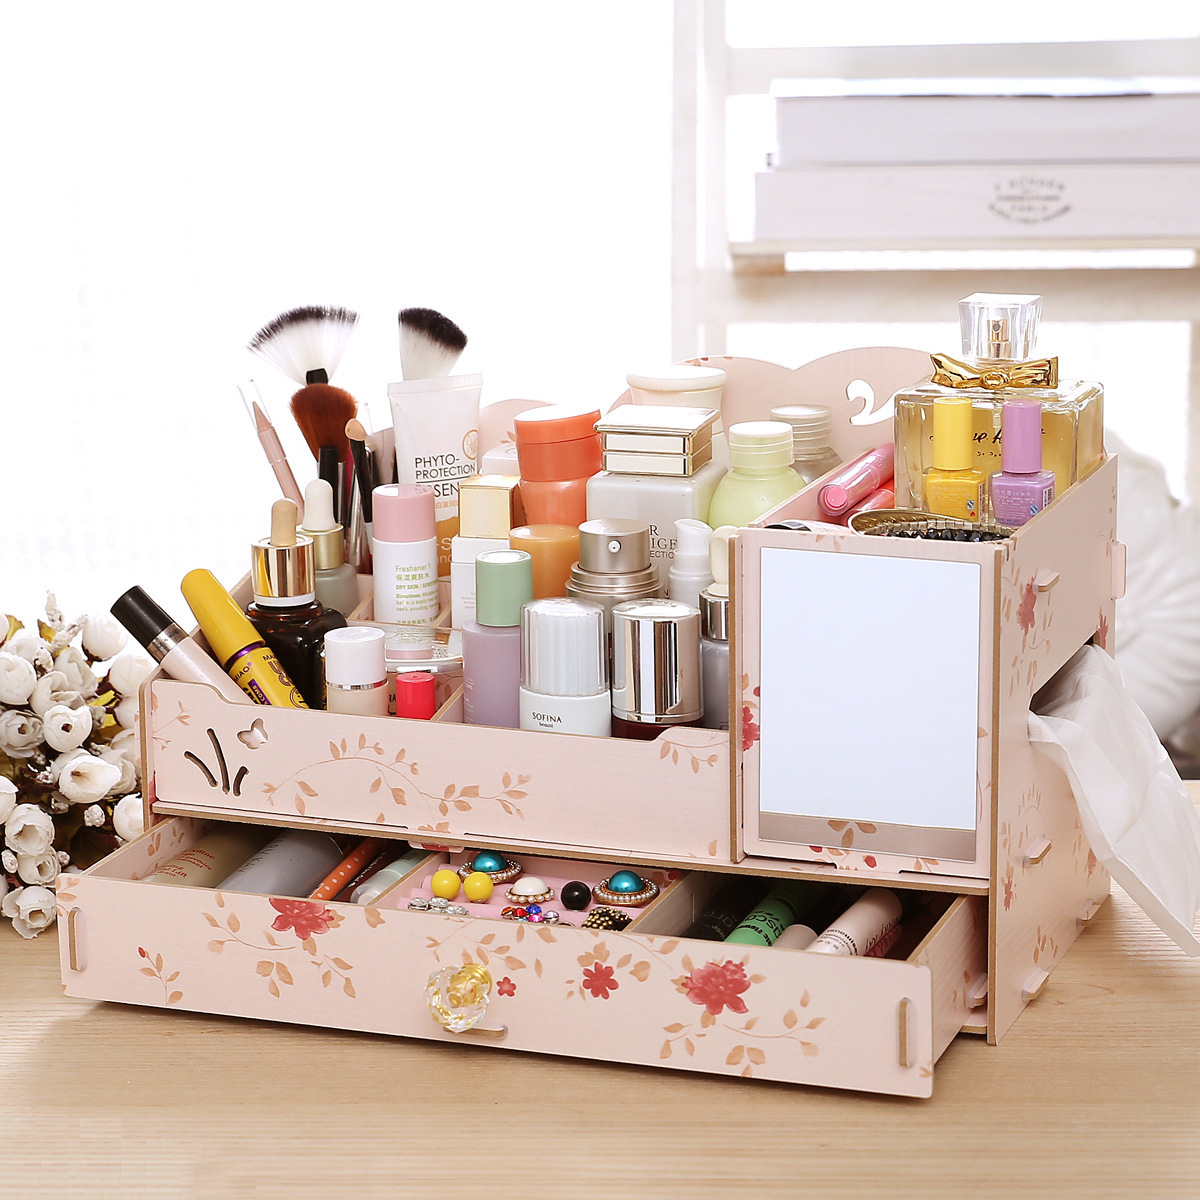 Aliexpress.com : Buy DIY Wood Women Makeup Organizer with Mirror ...